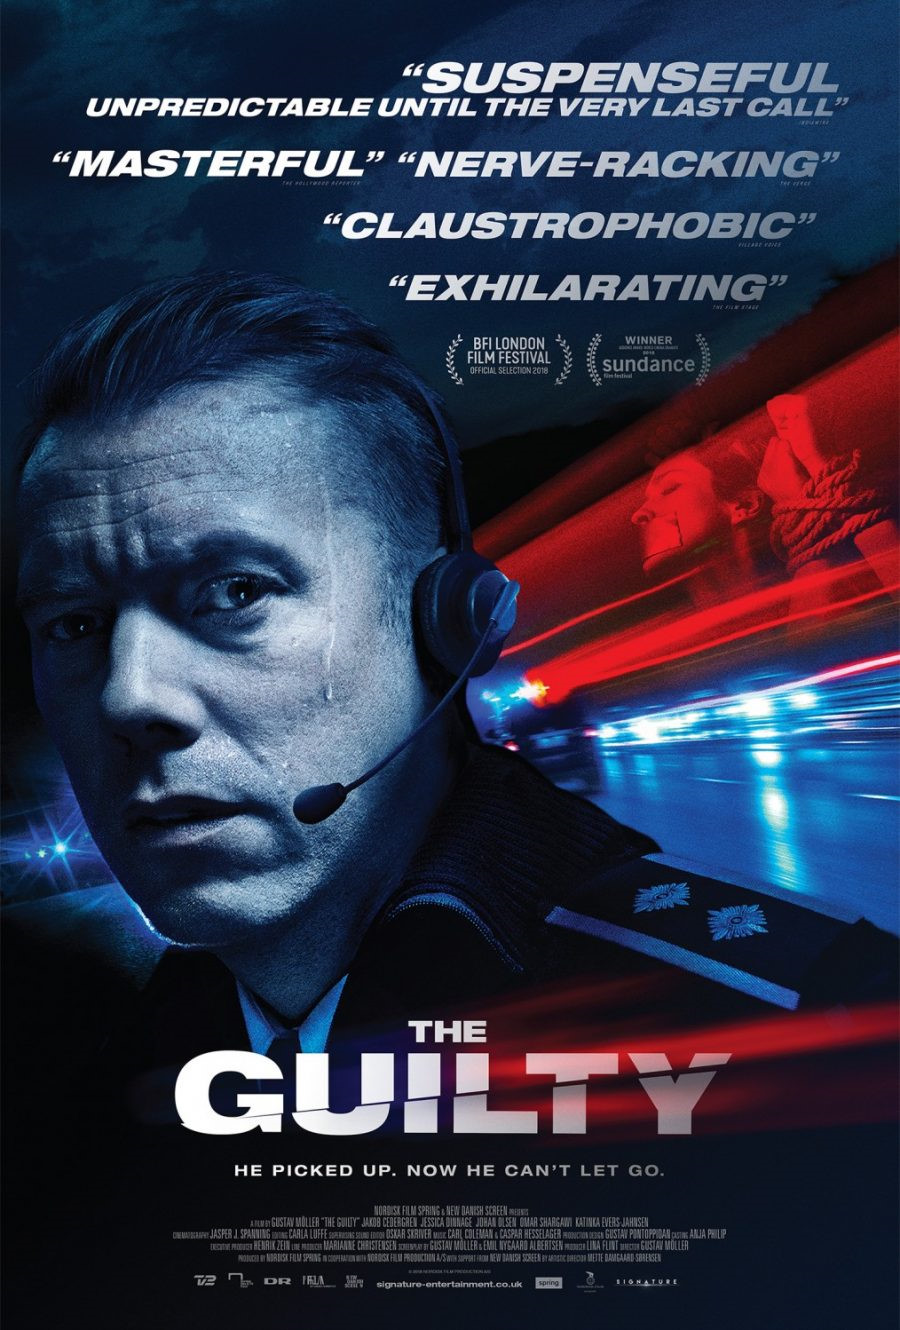 128 - The Guilty 2019 - Tội Lỗi